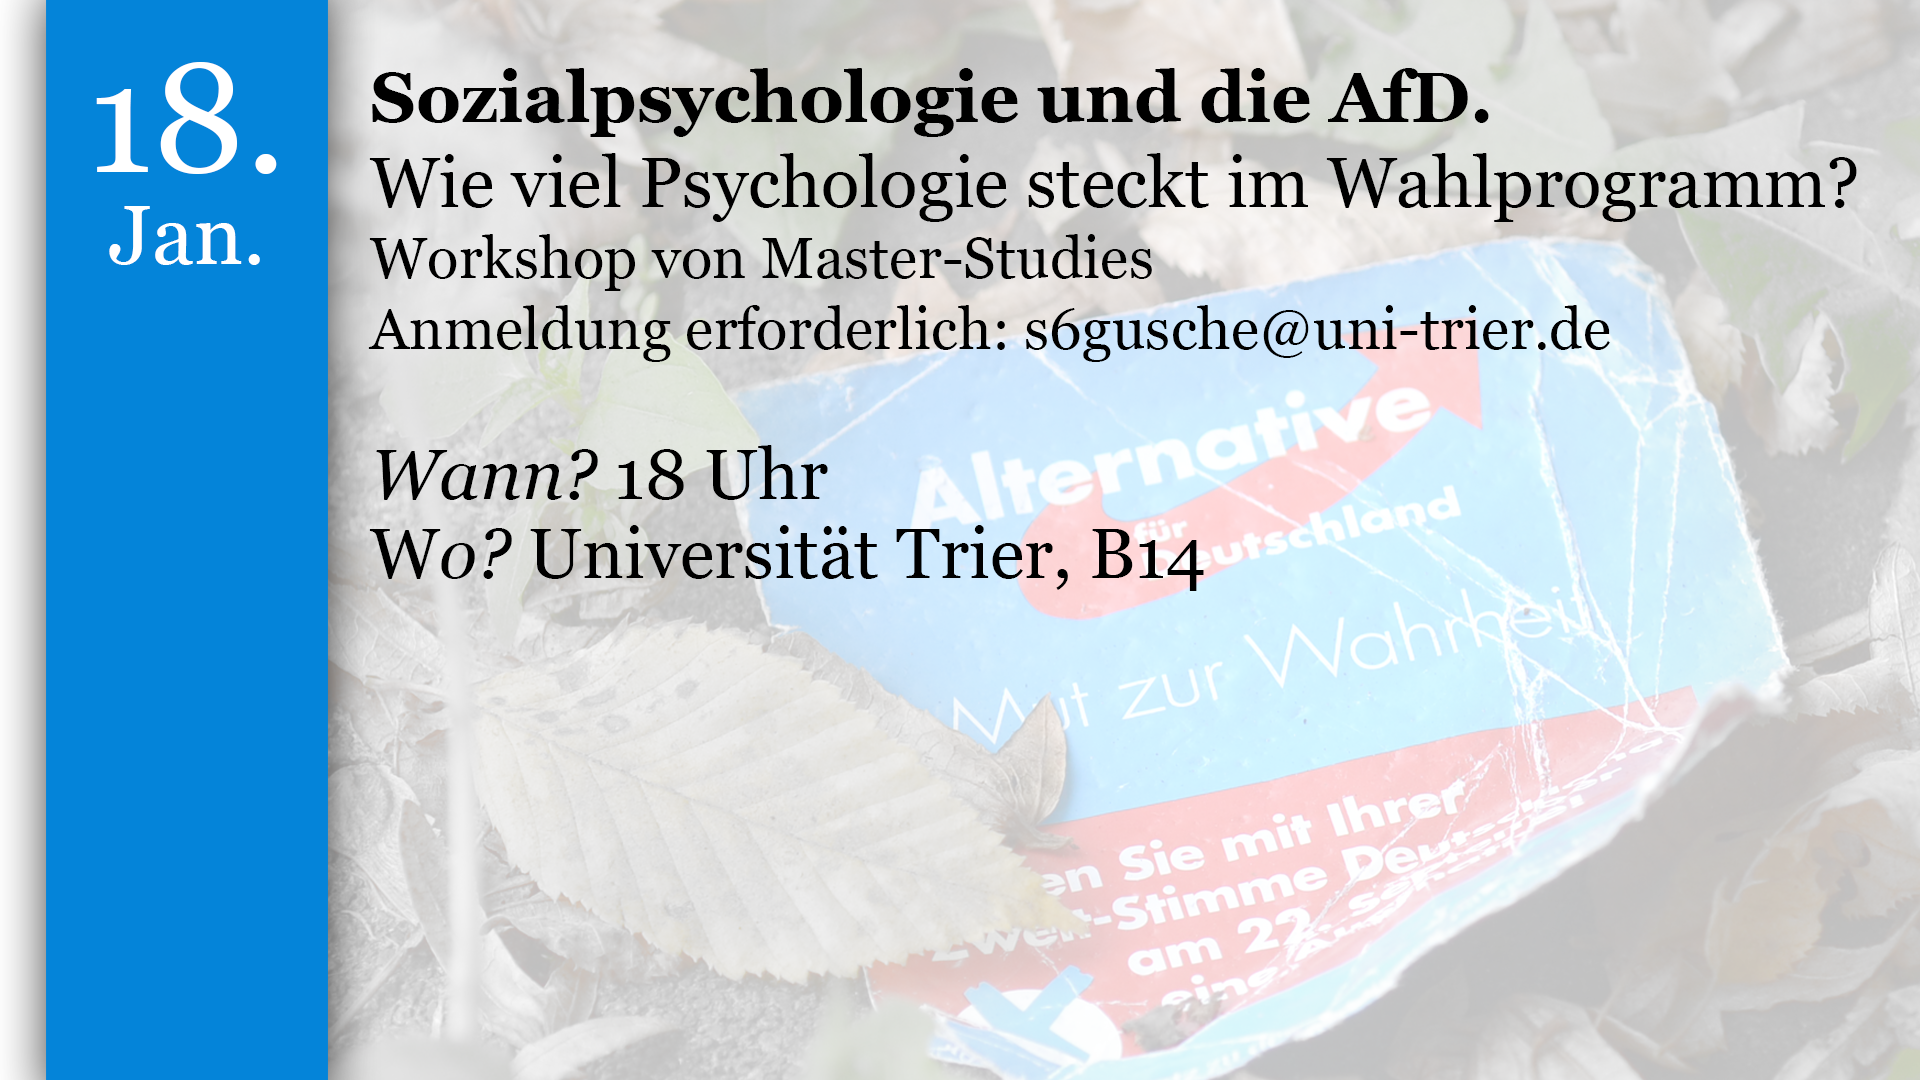 Psychoworkshop